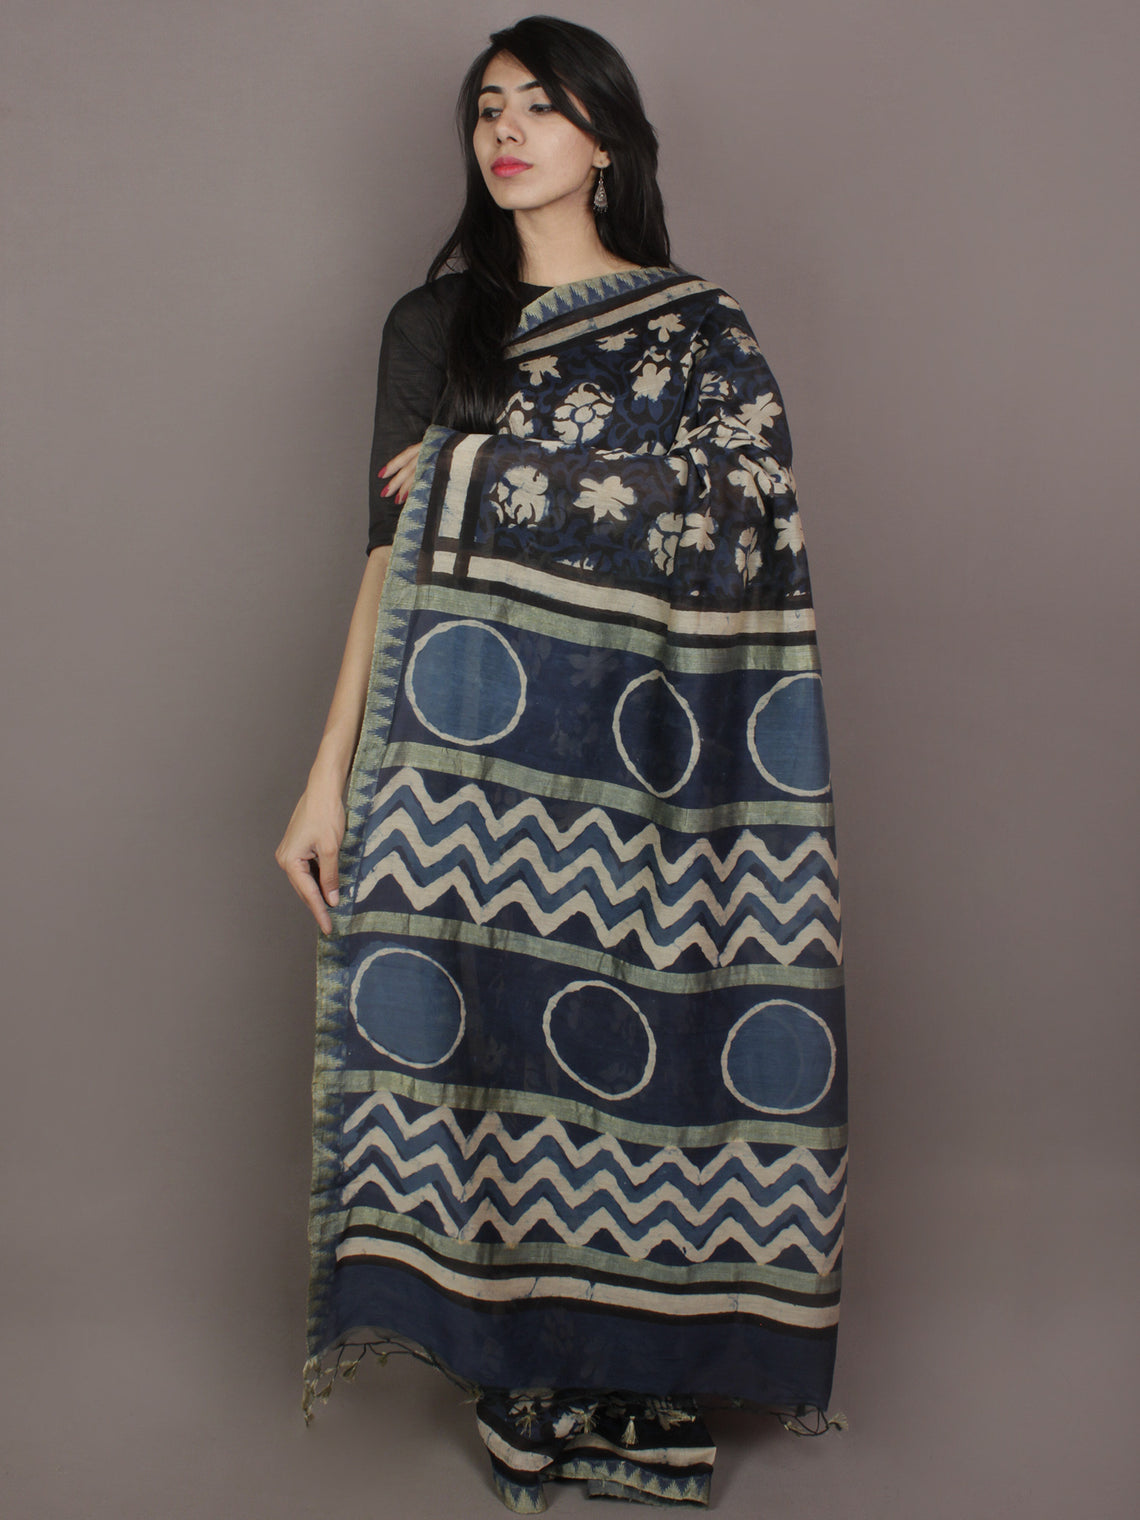 Indigo Black Ivory Hand Block Printed Kalamkari Chanderi Silk Saree With Ghicha Border - S031701163